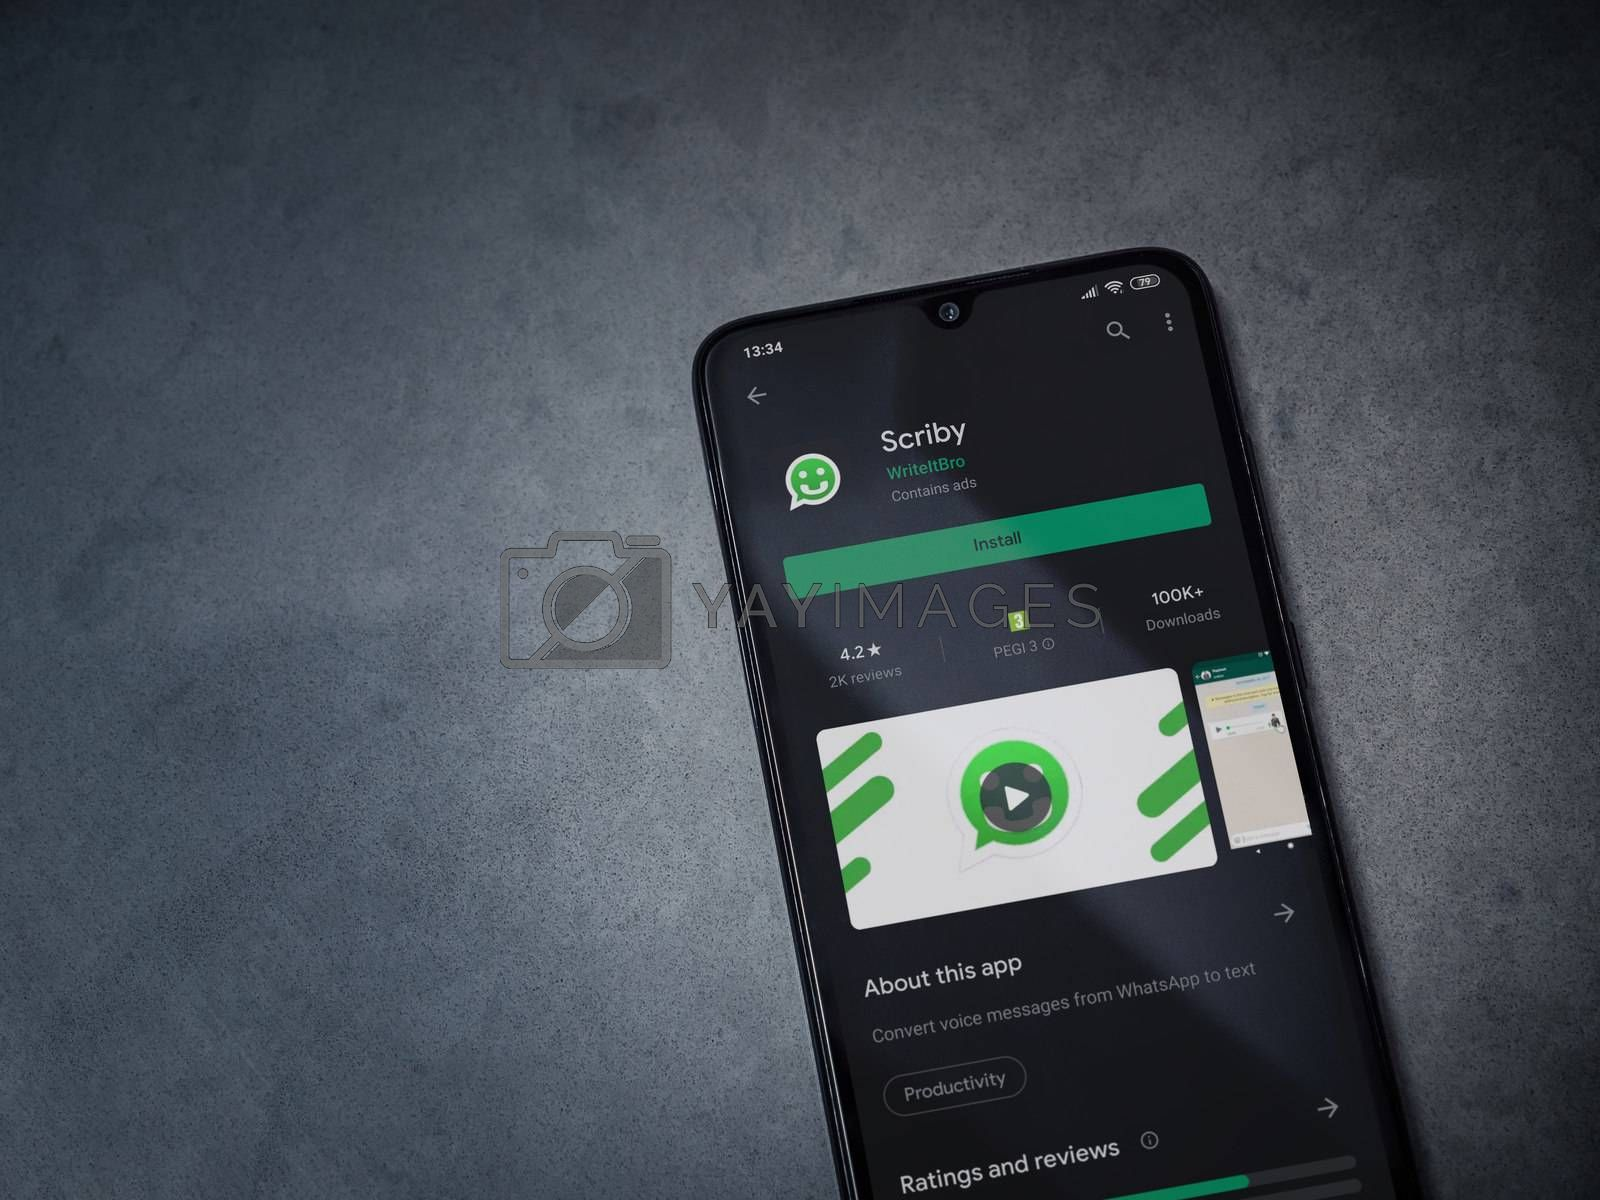 Lod, Israel - July 8, 2020: Scriby app play store page on the display of a black mobile smartphone on dark marble stone background. Top view flat lay with copy space.